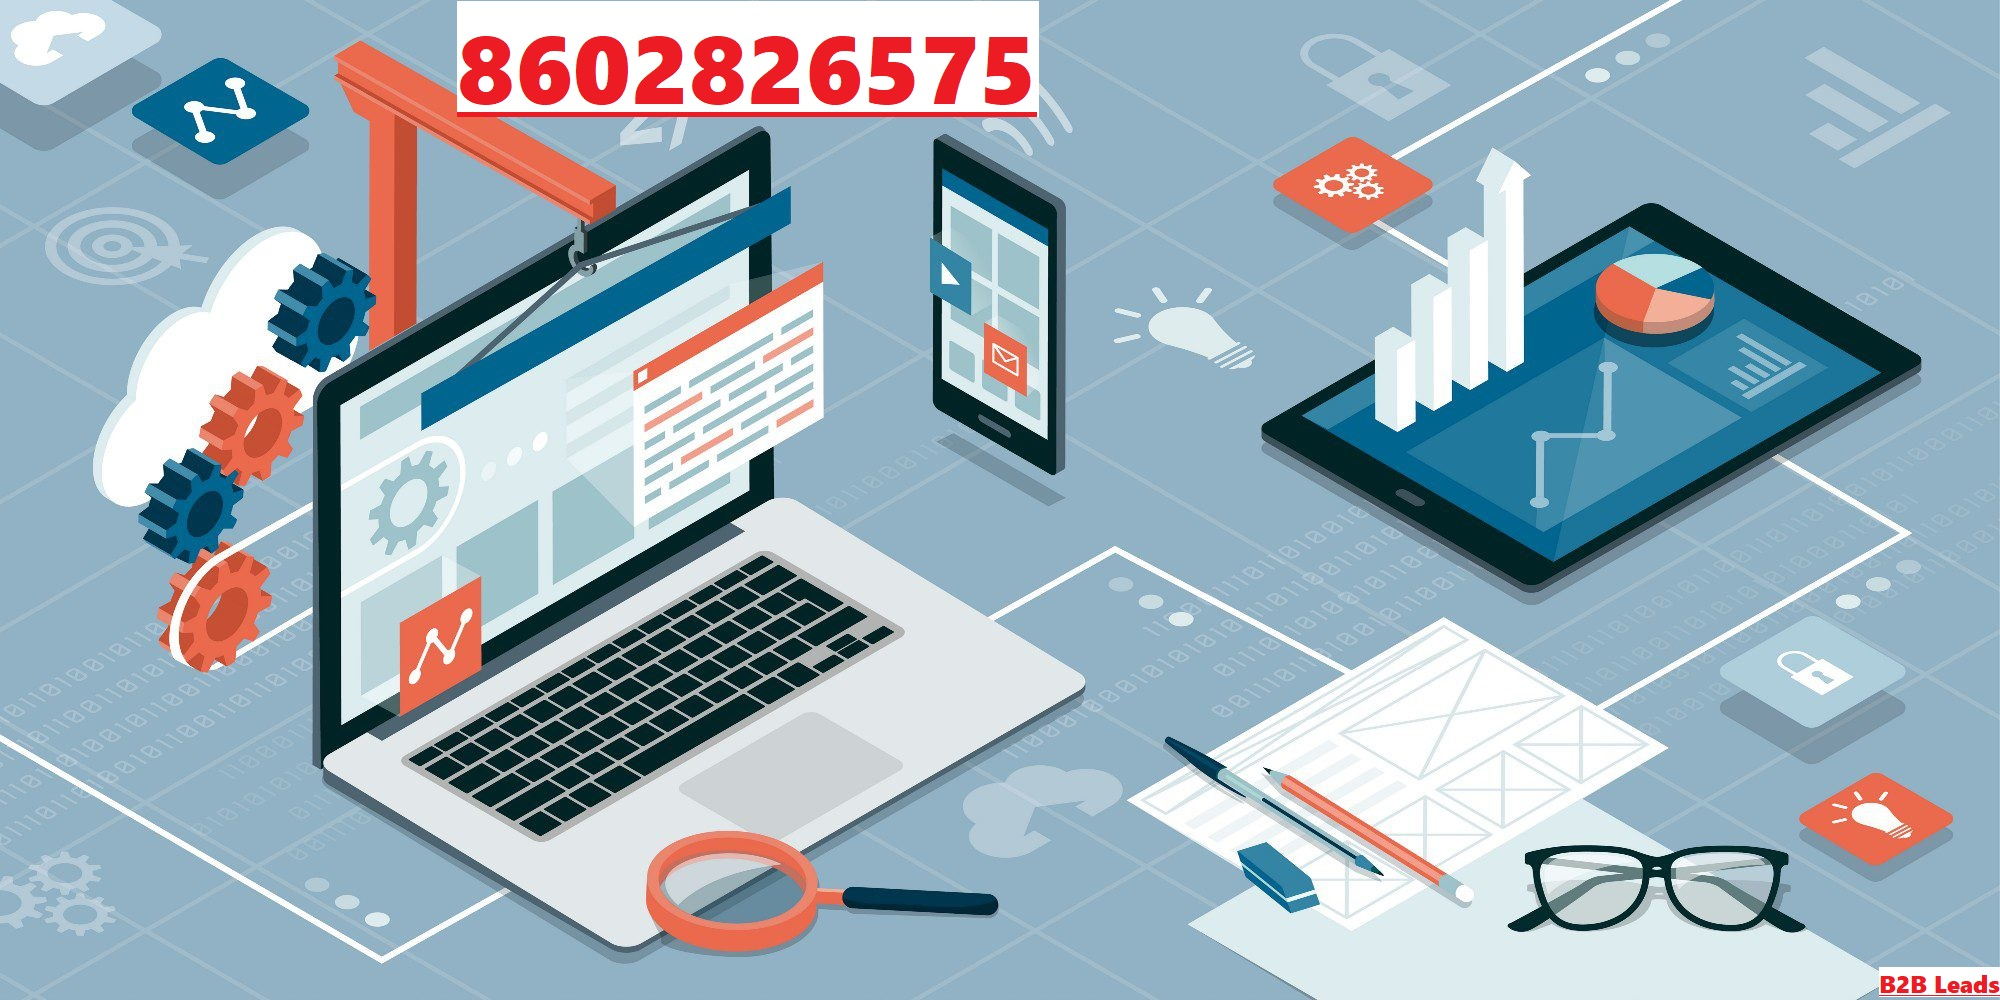 Business Leads Provider in Dhanbad – B2B database and Digital Marketing Company in Dhanbad